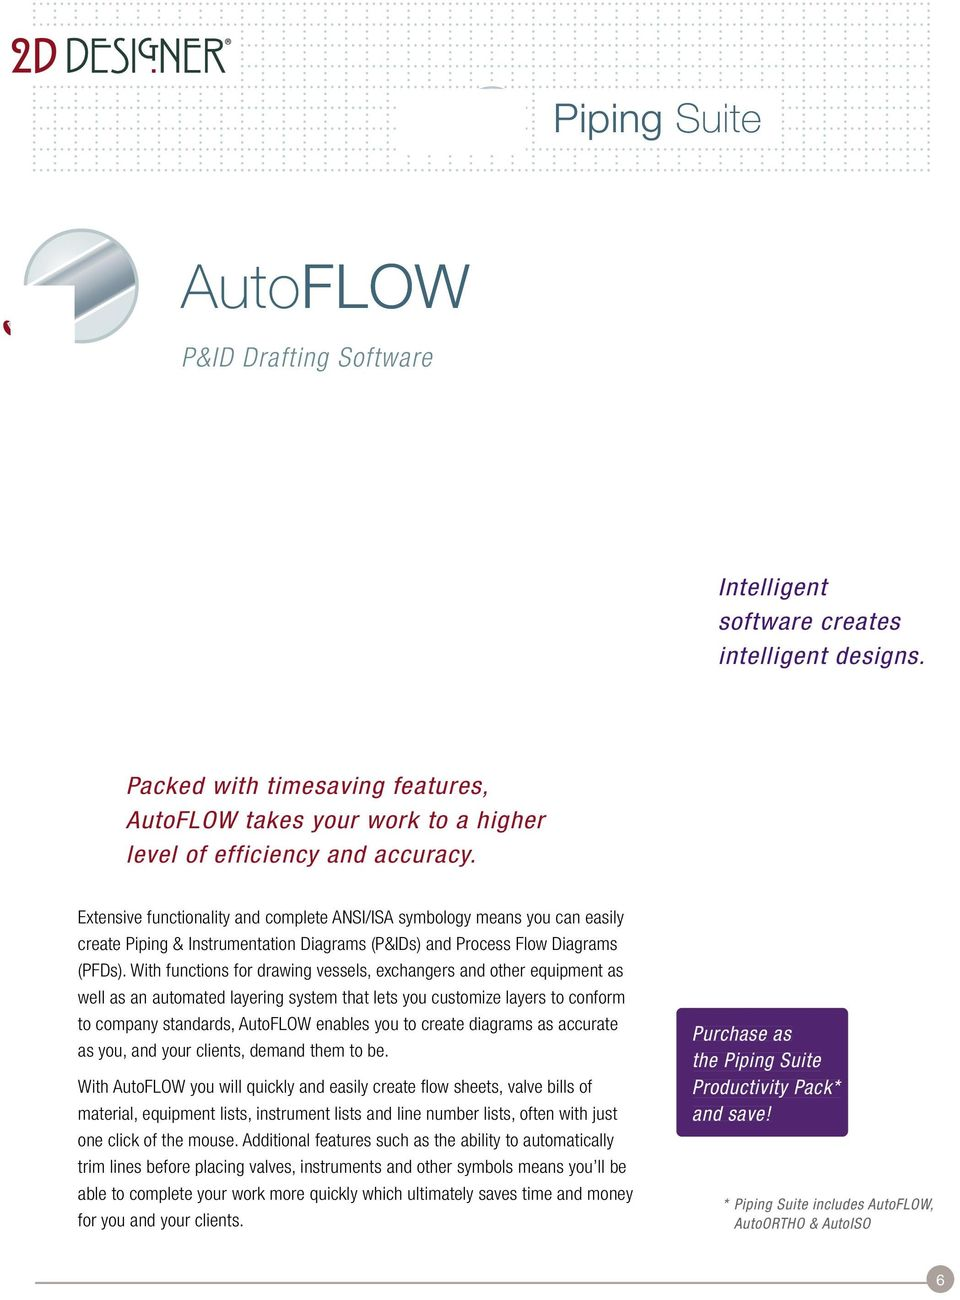 With functions for drawing vessels, exchangers and other equipment as well as an automated layering system that lets you customize layers to conform to company standards, AutoFLOW enables you to